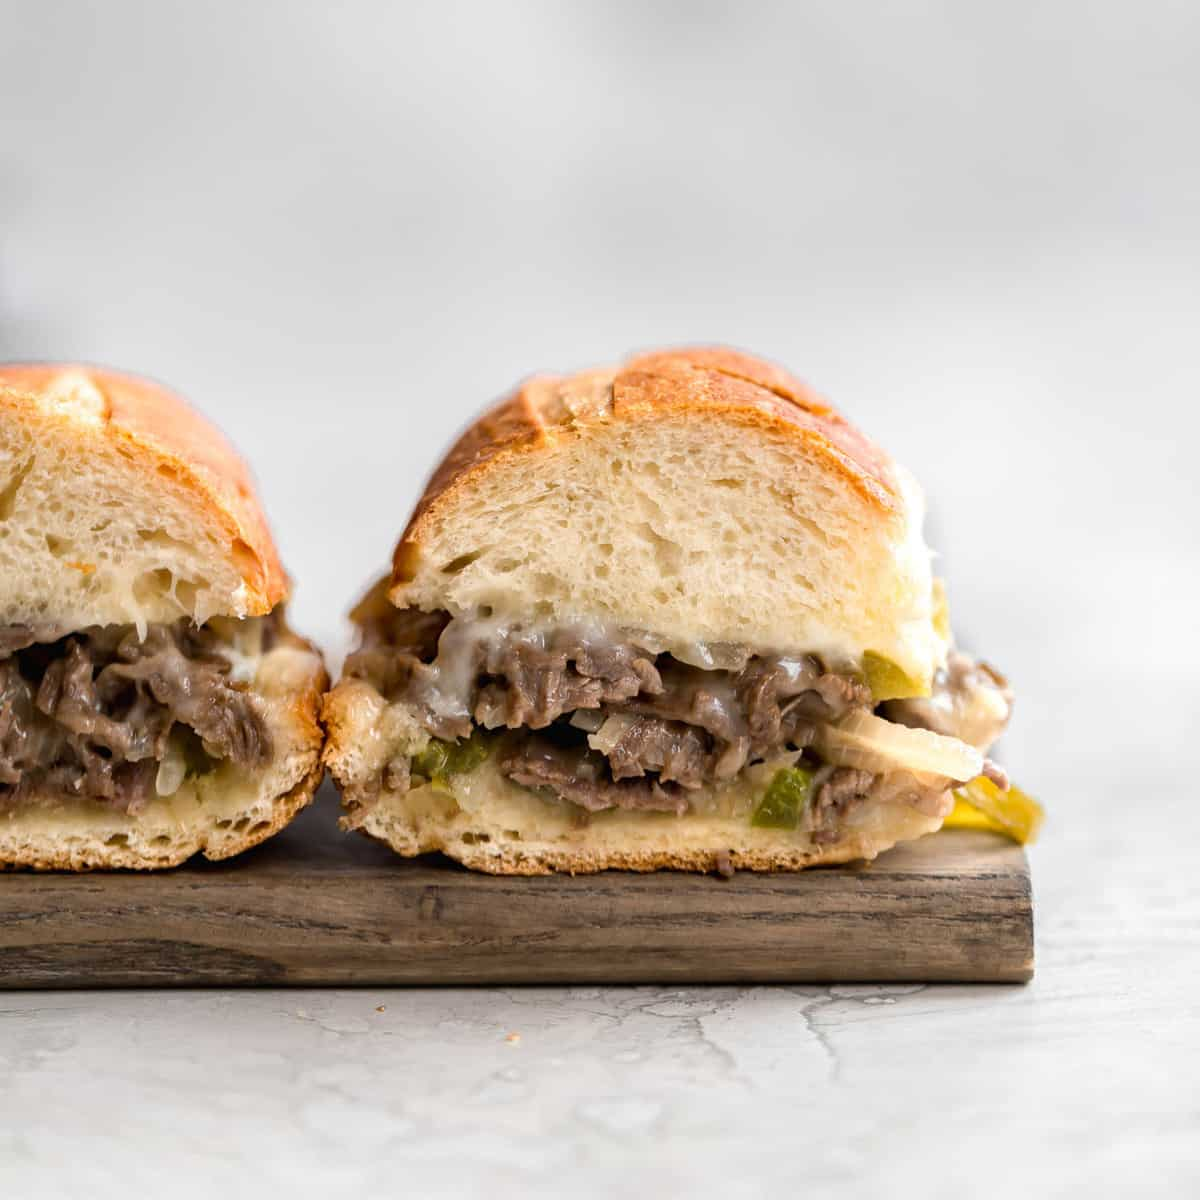 Two philly cheesesteak sandwiches on a wooden cutting board with the insides exposed showing the cheesy meat filling.